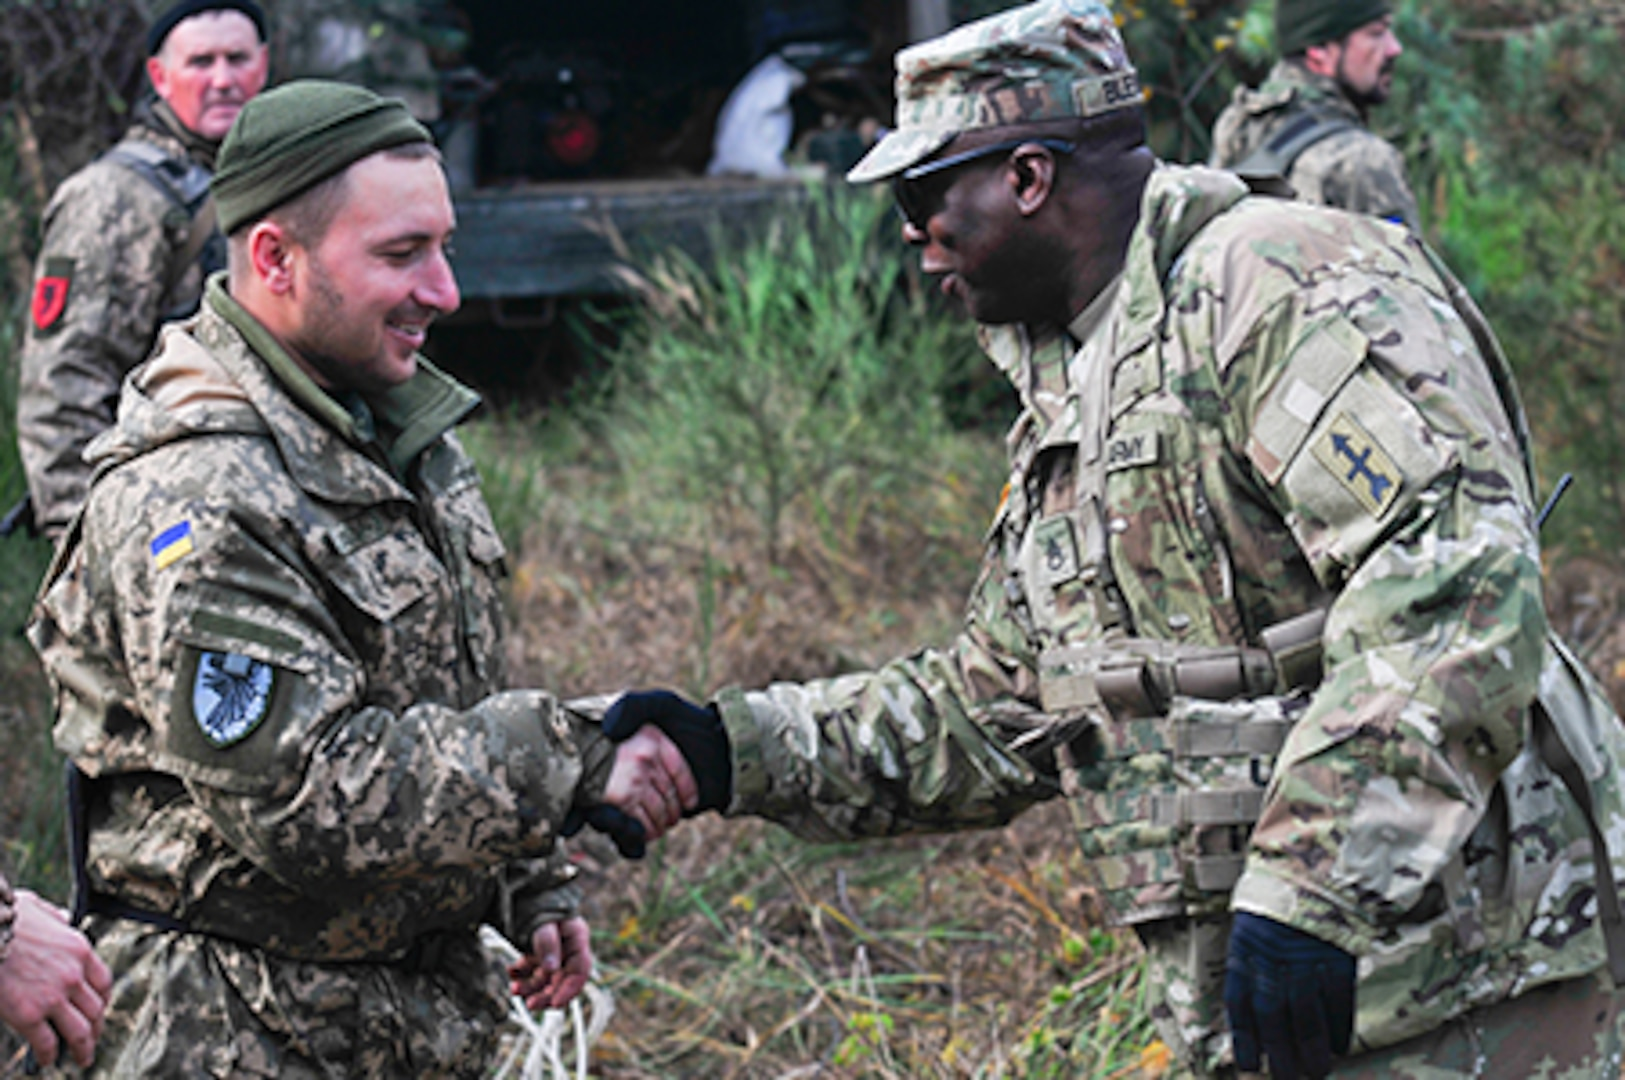 Staff Sgt. Michael Blevins, an adviser with Task Force Juvigny, greets his Armed Forces Ukraine counterparts during battalion training at the Combat Training Center – Yavoriv, Ukraine, Nov 13, 2019.